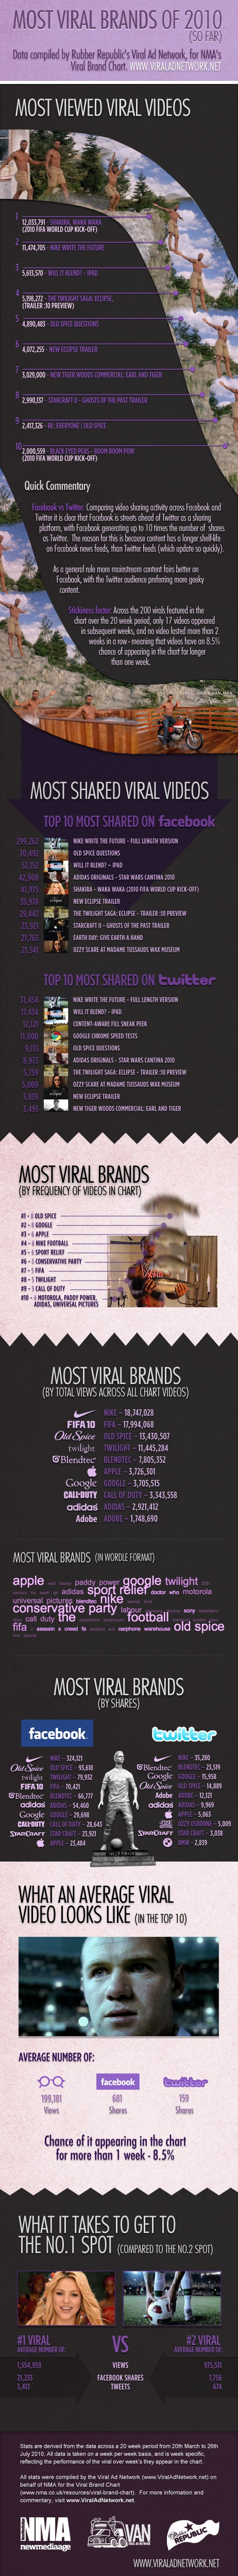 the best viral brands of 2010